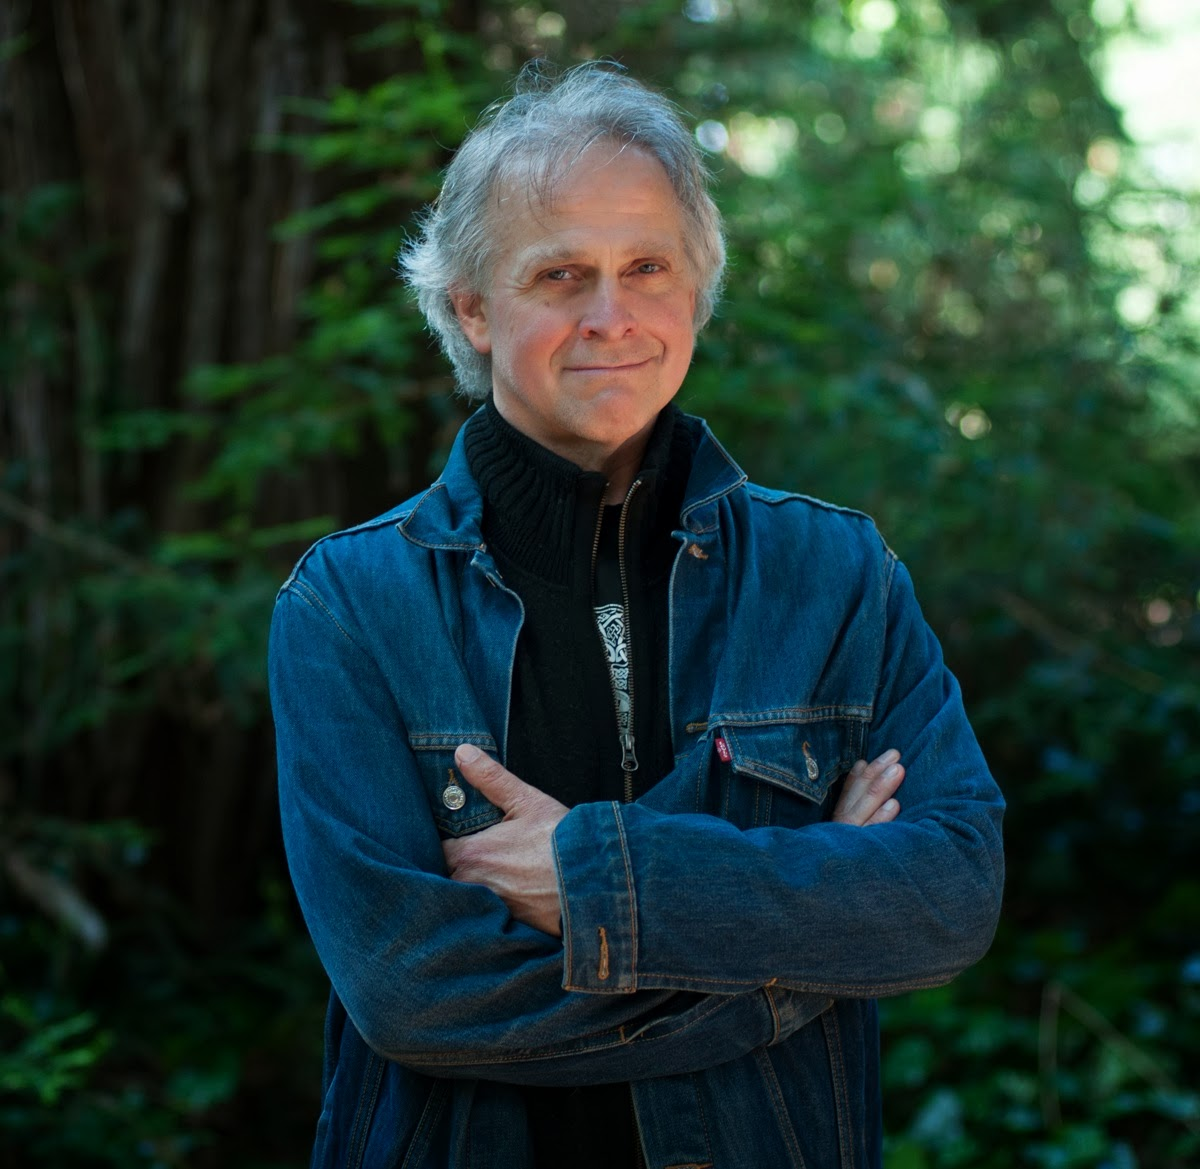 Richard Power, Author, Speaker, Yoga Teacher (RYT 500)